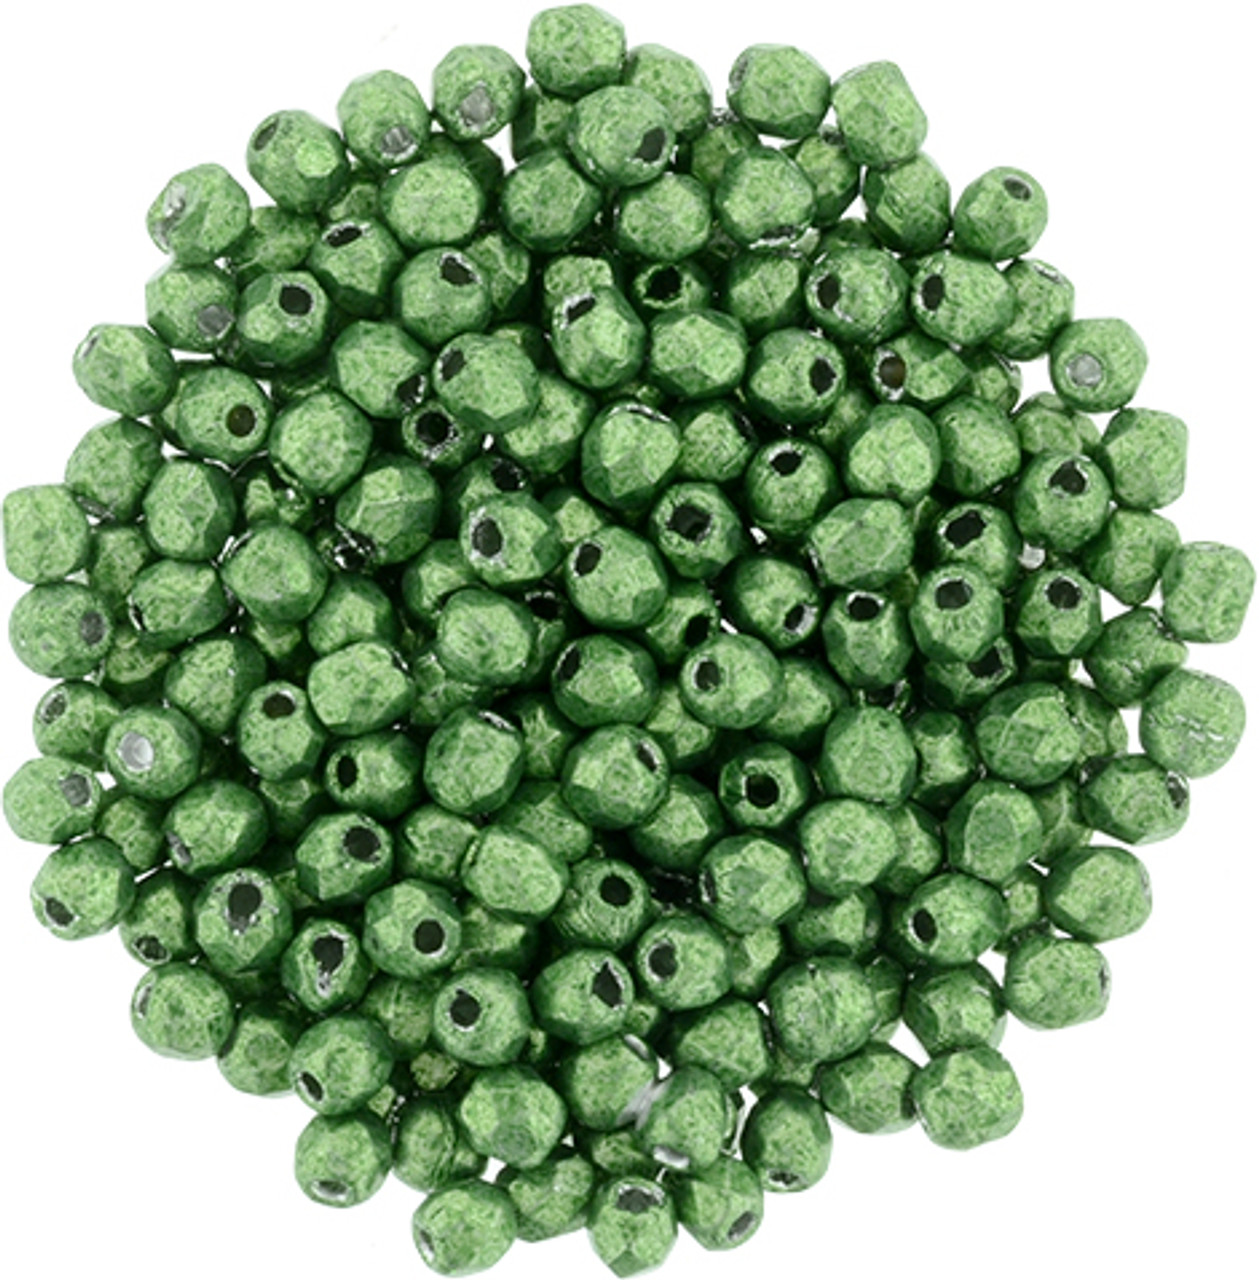 2mm Saturated Metallic Kale Fire Polish Beads - 50pk